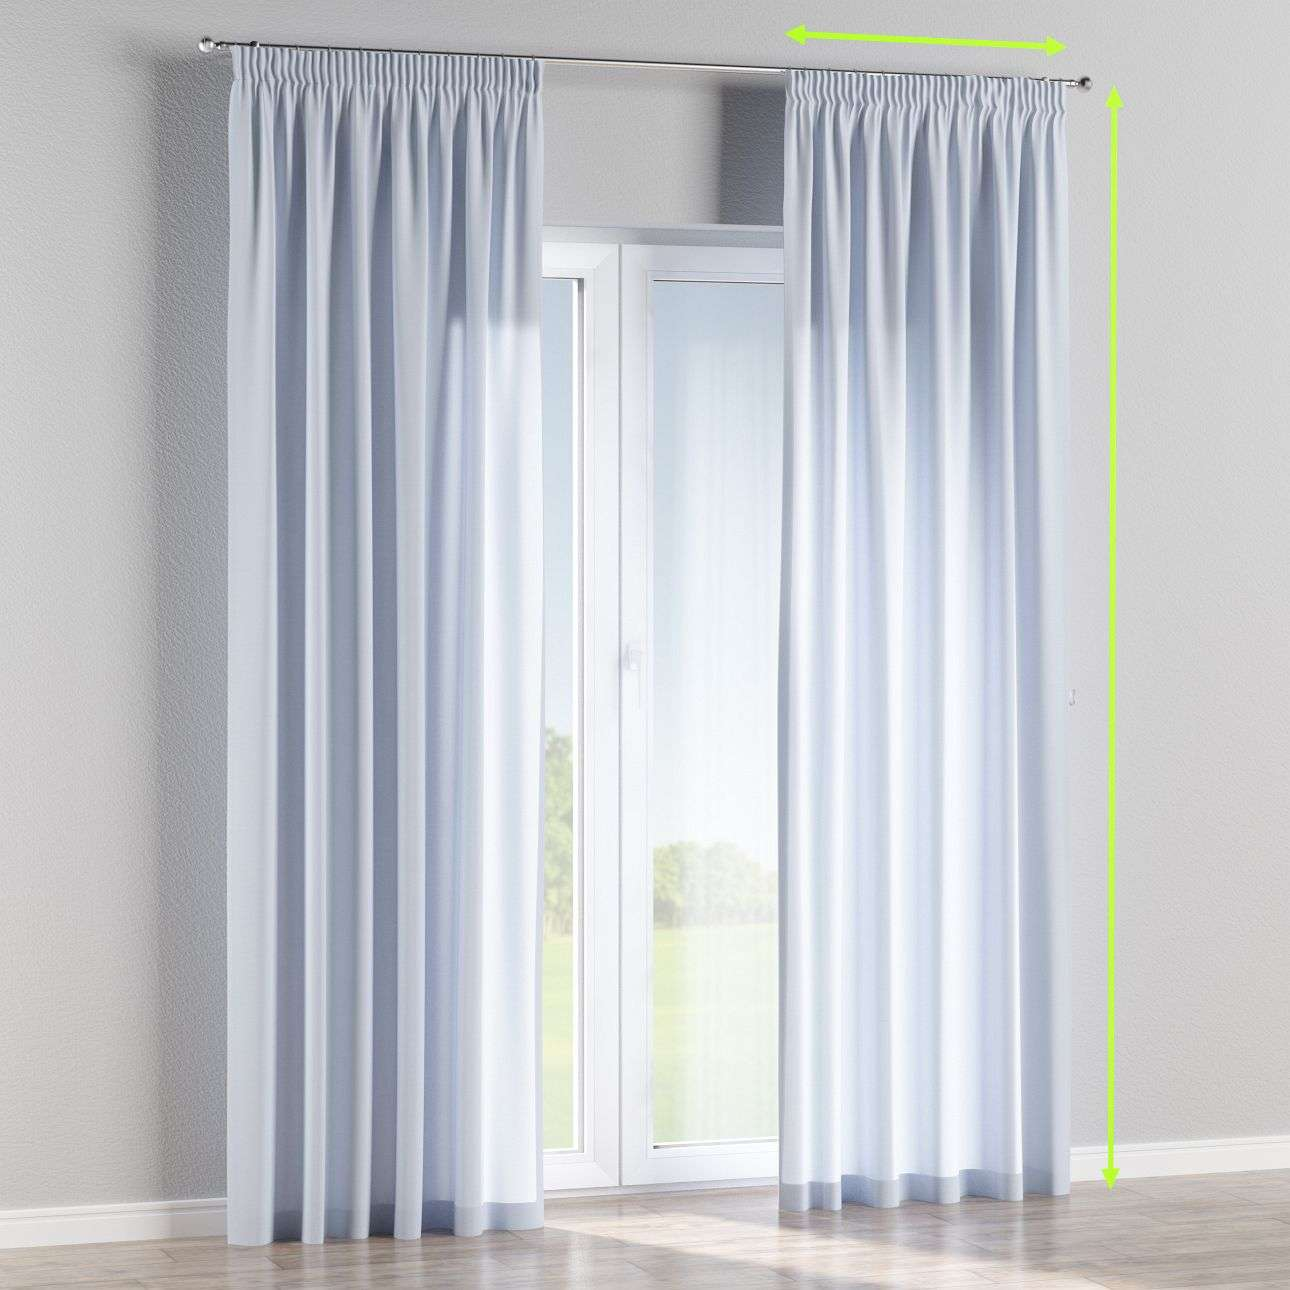 Pencil pleat lined curtains in collection Loneta , fabric: 133-35